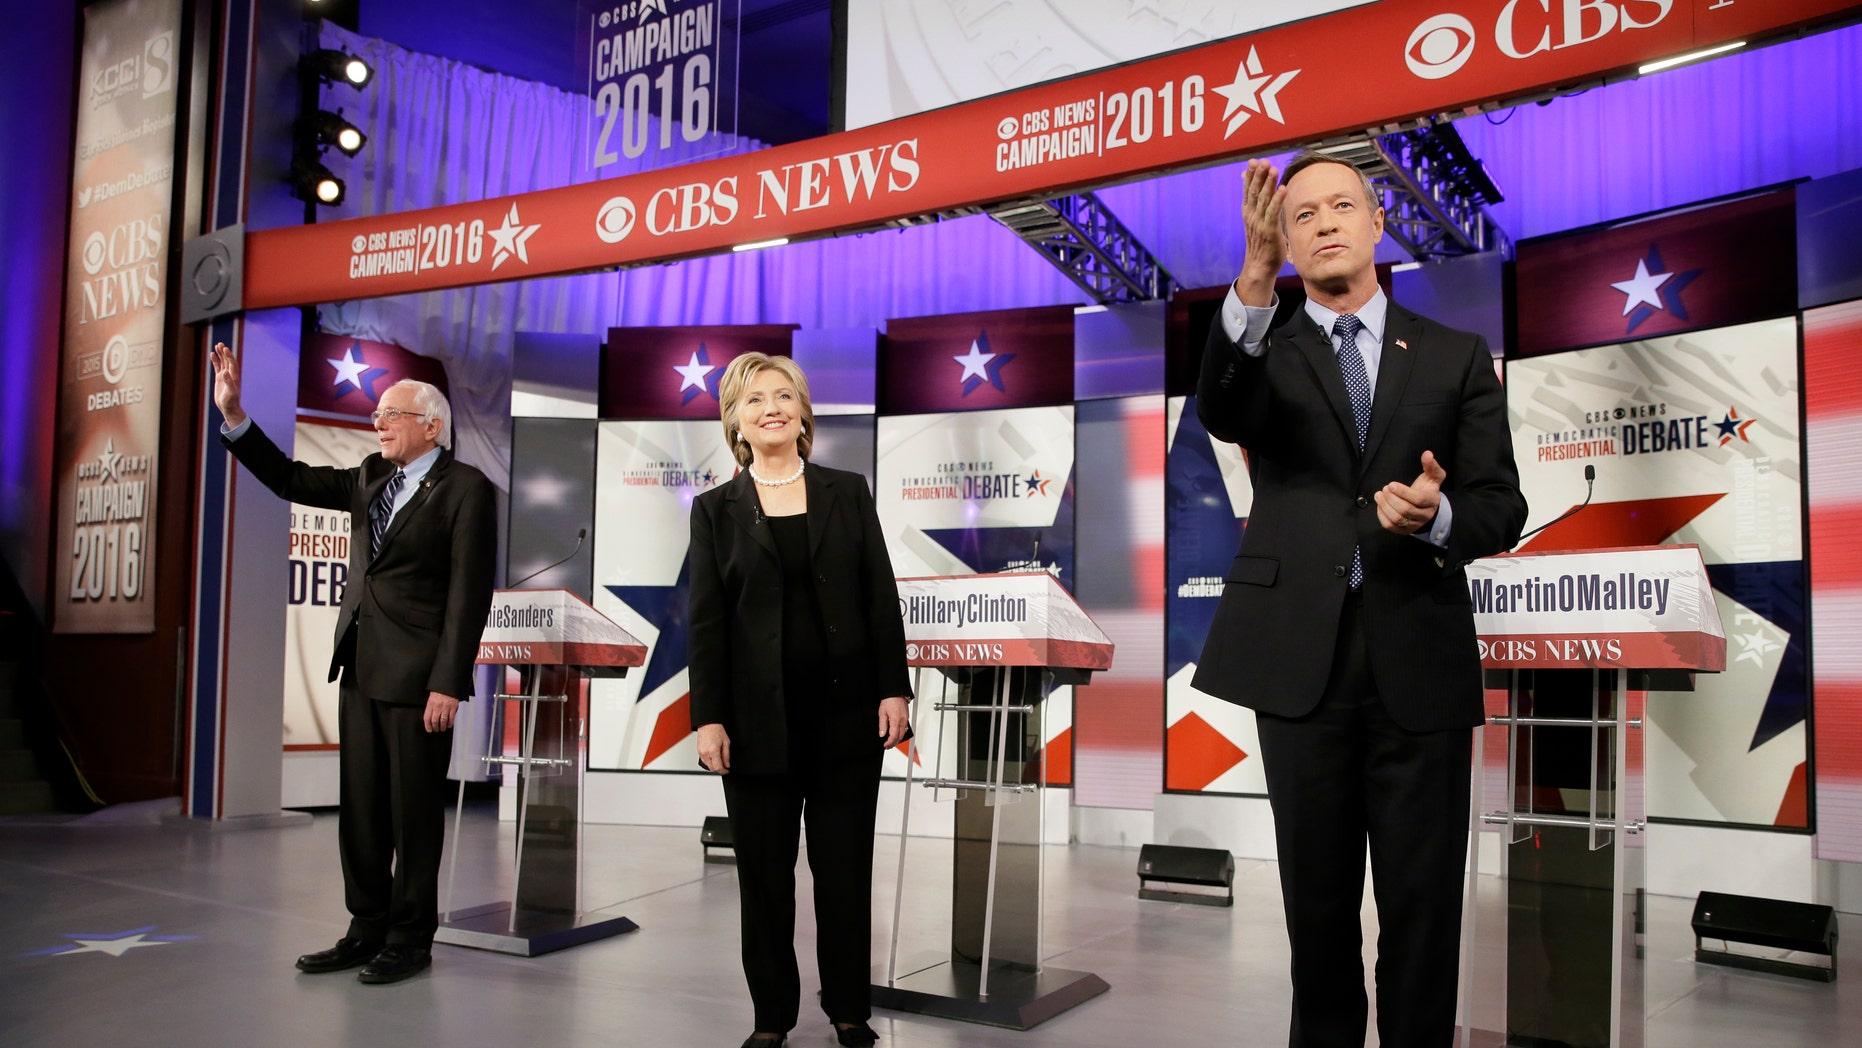 Nov. 14, 2015 - FILE photo of Democratic presidential candidates, from left, Bernie Sanders, Hillary Clinton and former Gov. Martin O'Malley taking the stage before a Democratic presidential primary debate in Des Moines, Iowa. (AP)